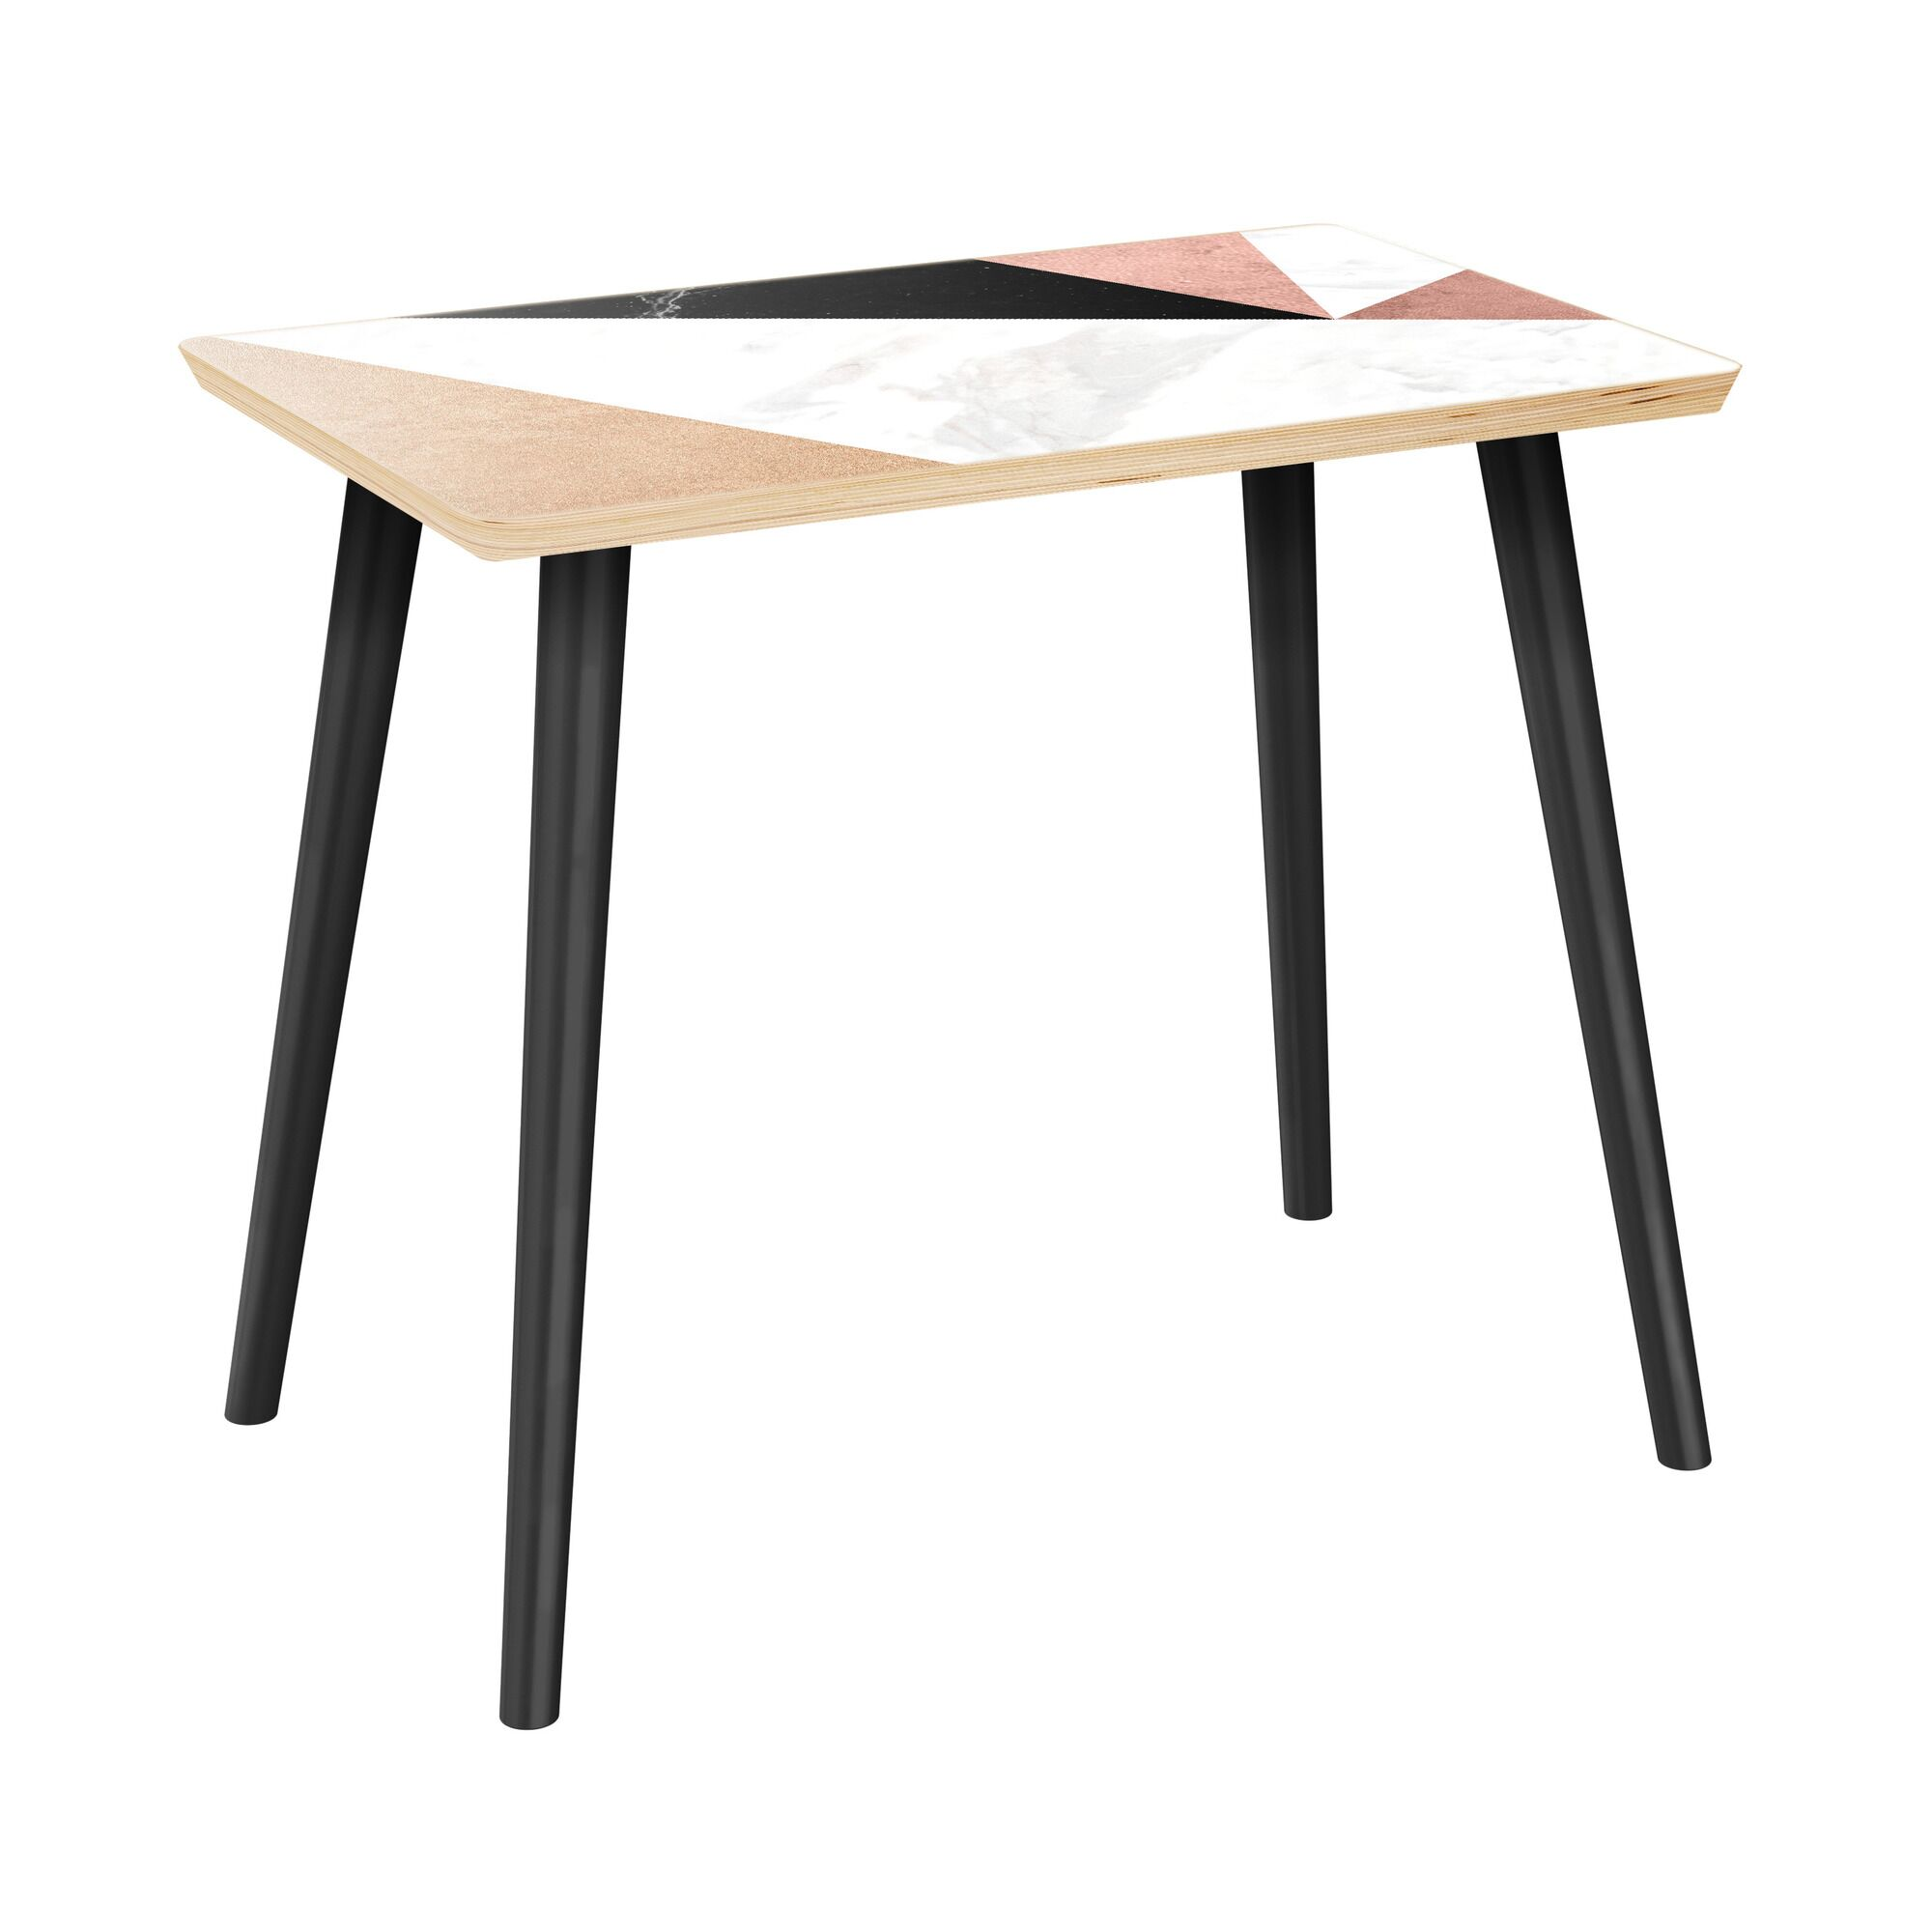 Ruble End Table Table Top Color: Natural, Table Base Color: Black